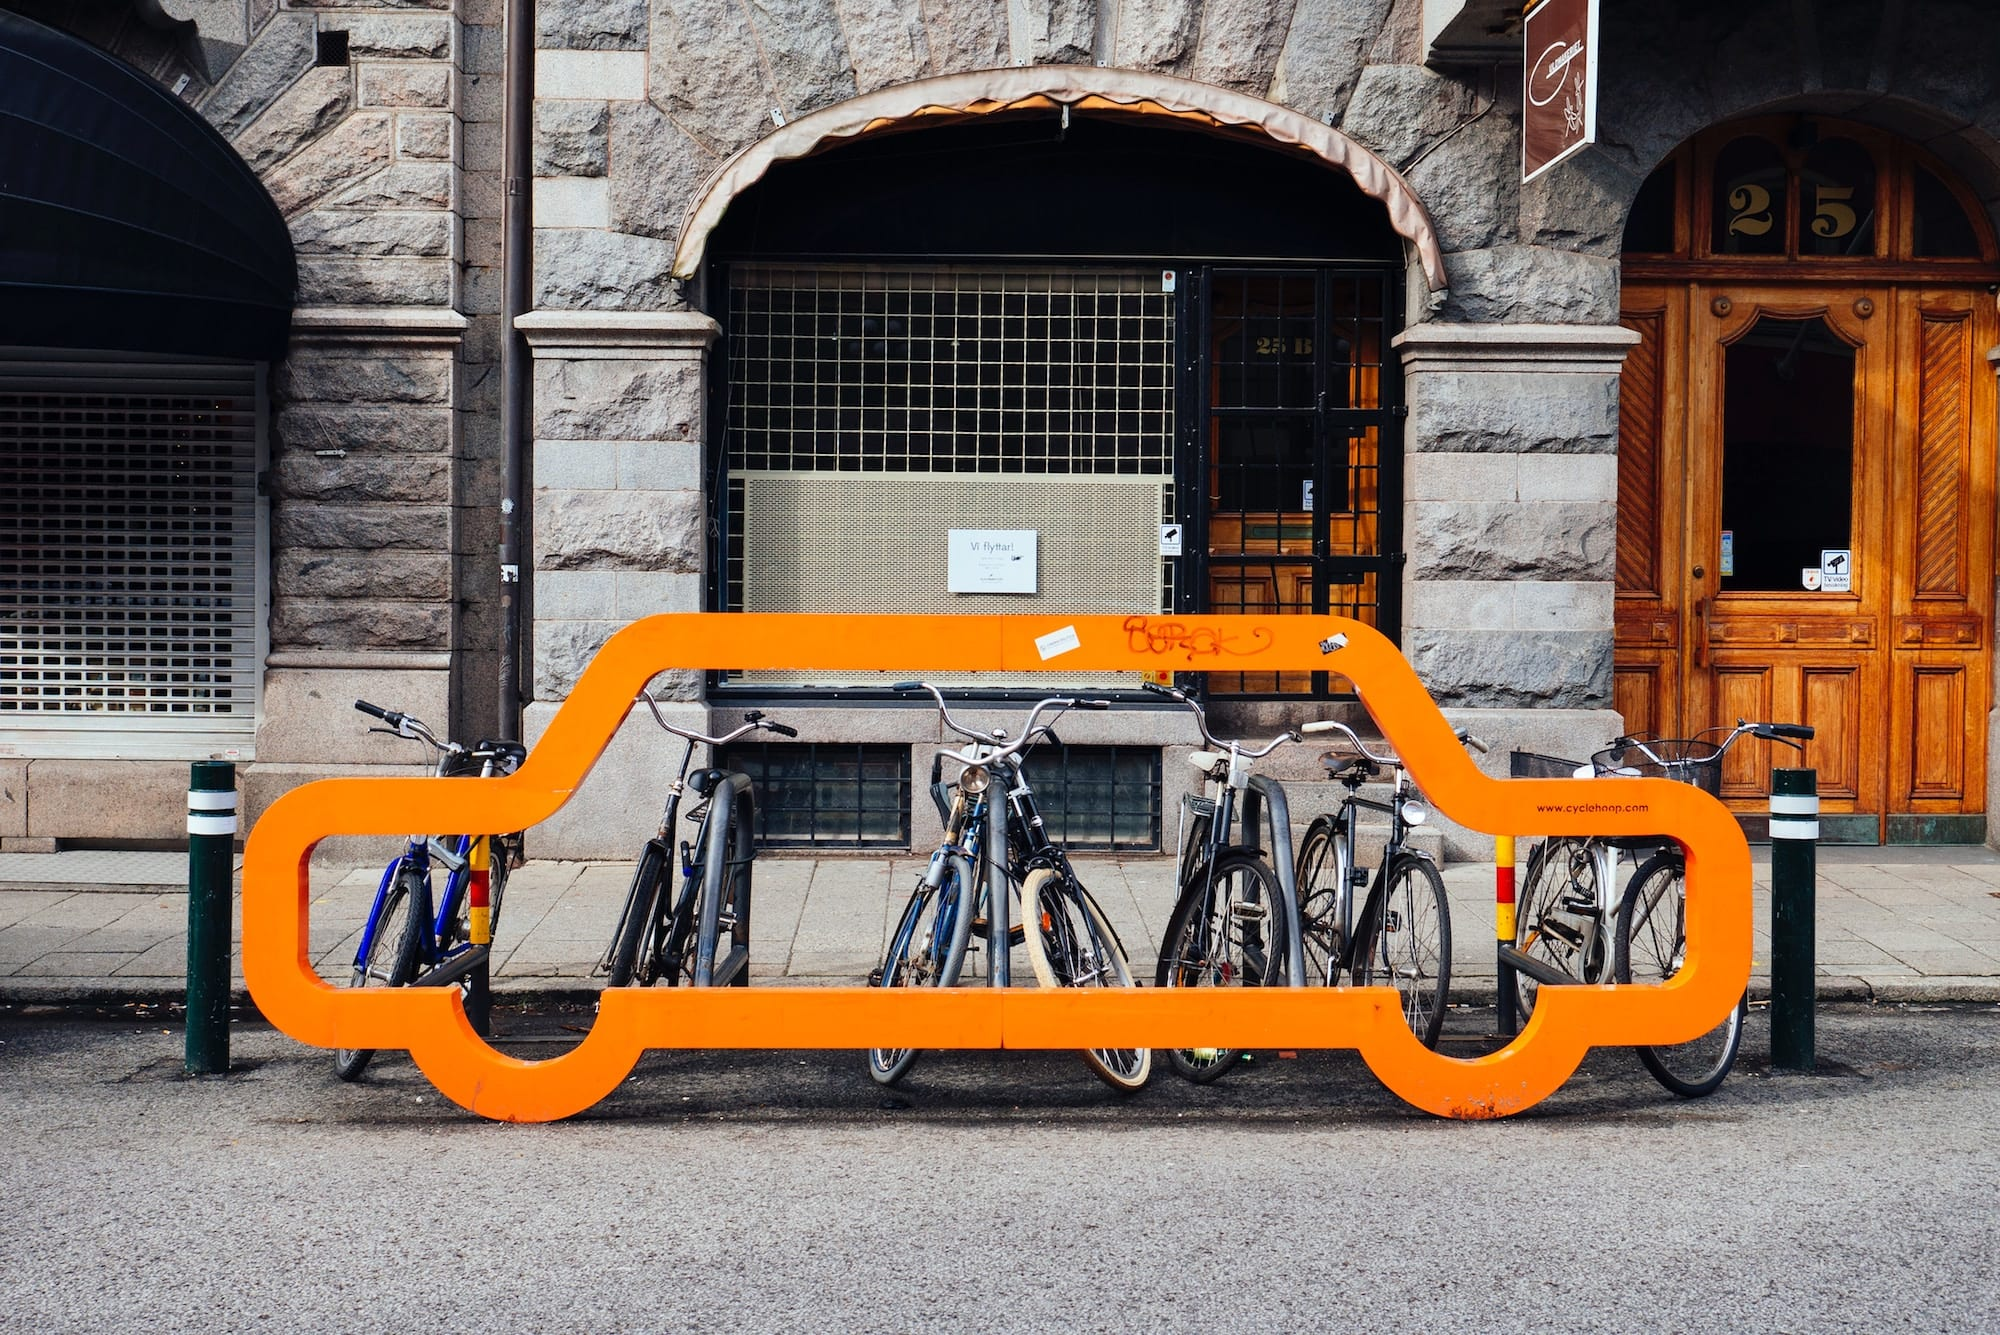 bikeshare in a city